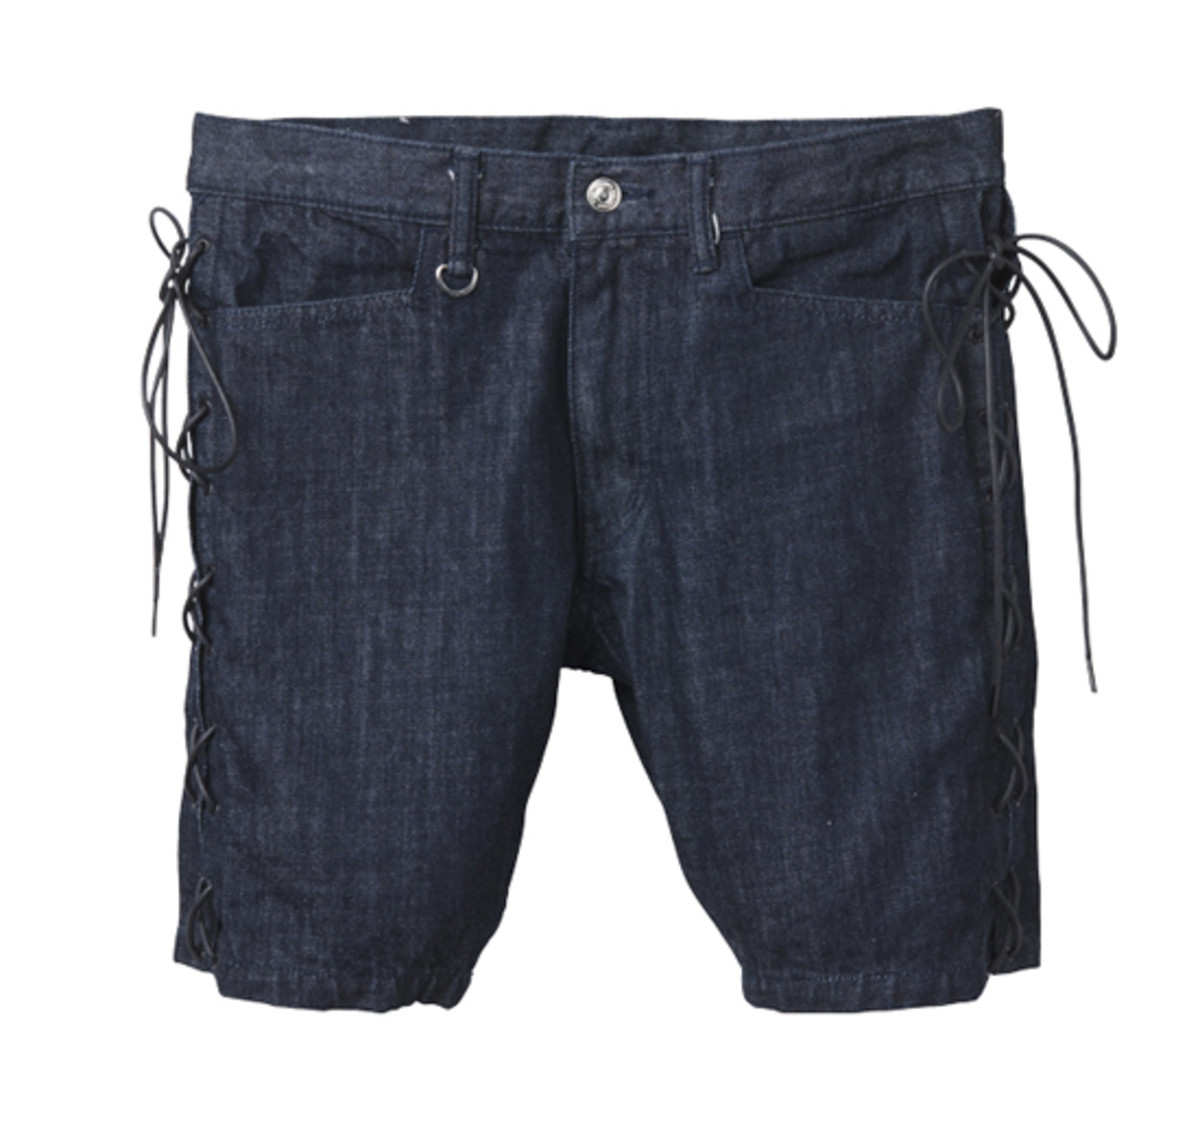 M.E.T.A.L. Denim Shorts Indigo